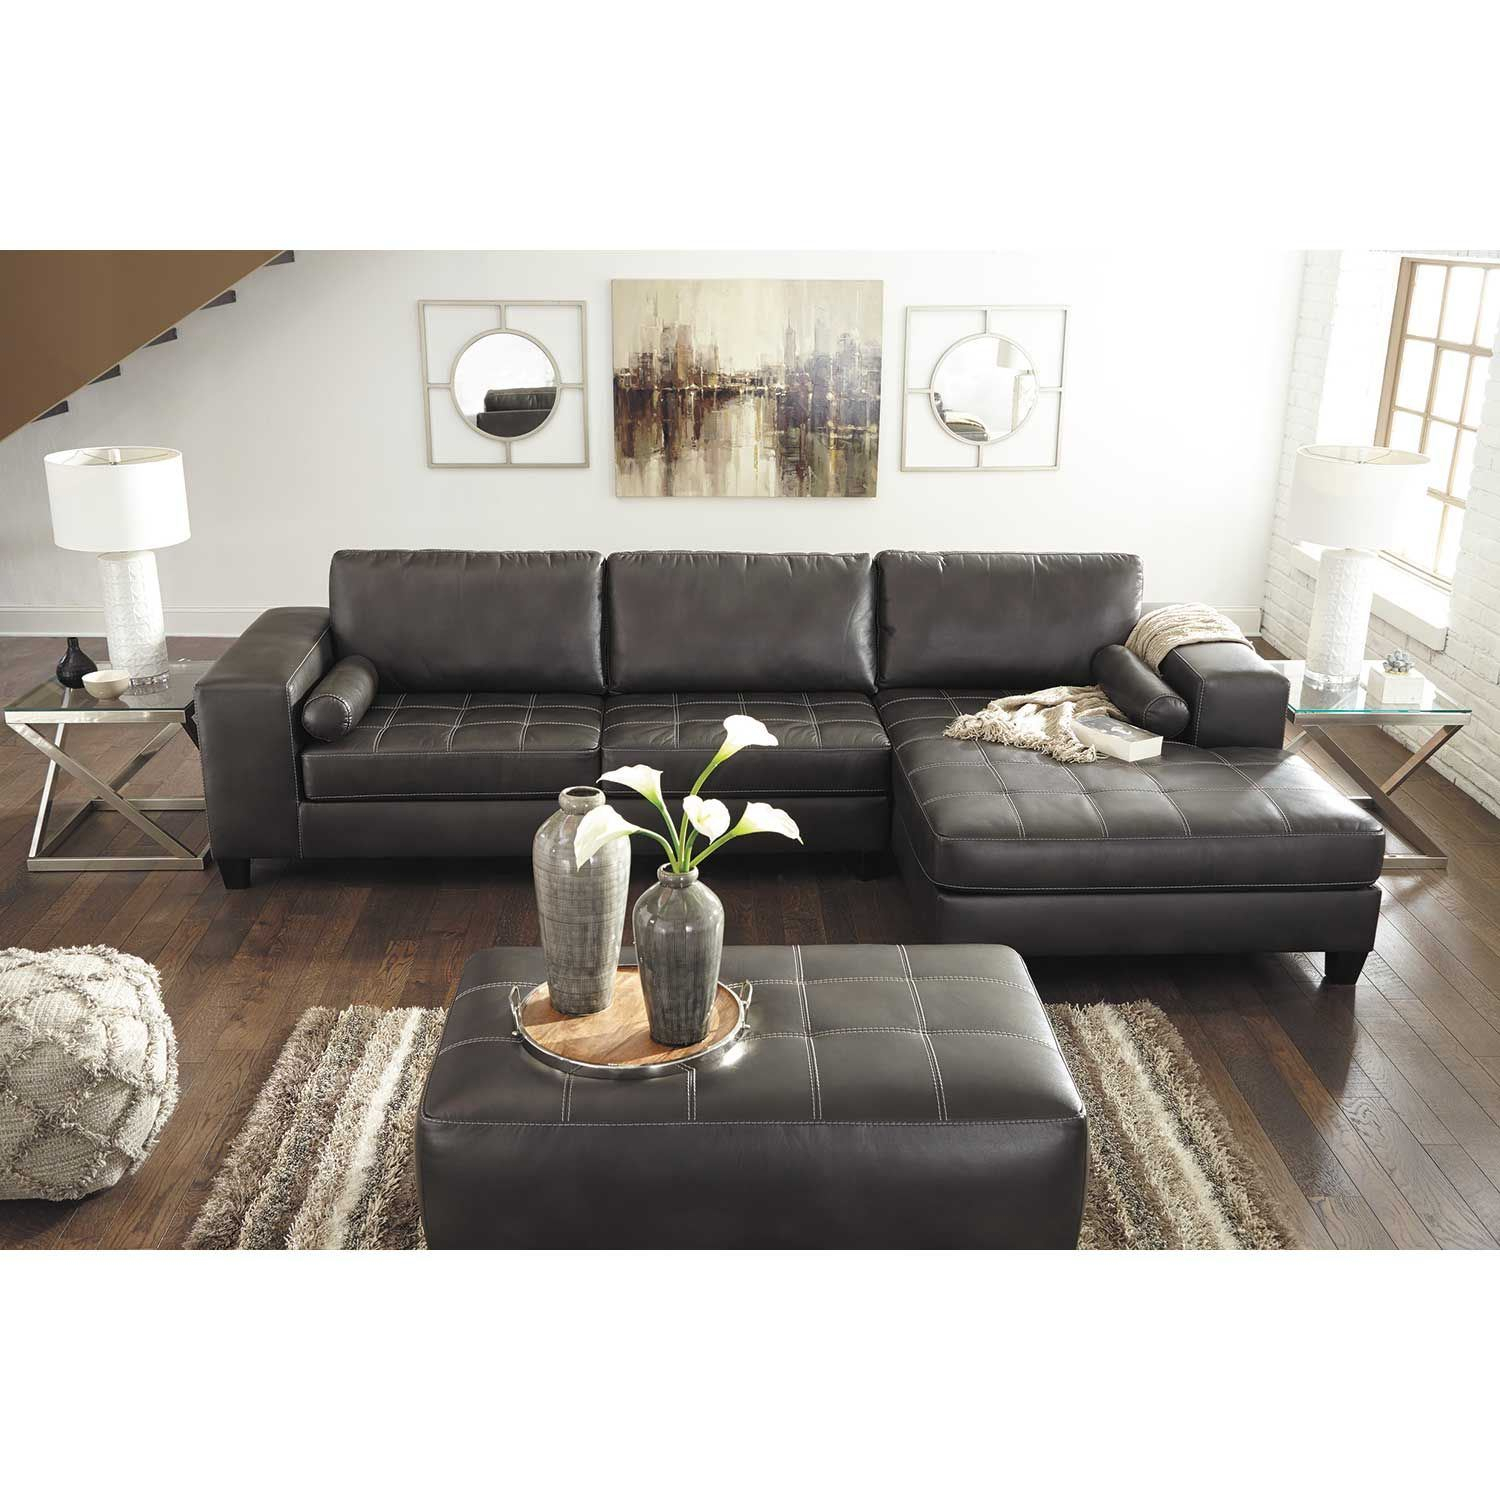 Nokomis 2 Piece Sectional With Raf Chaise 8770117/8770166 Intended For Evan 2 Piece Sectionals With Raf Chaise (View 6 of 15)